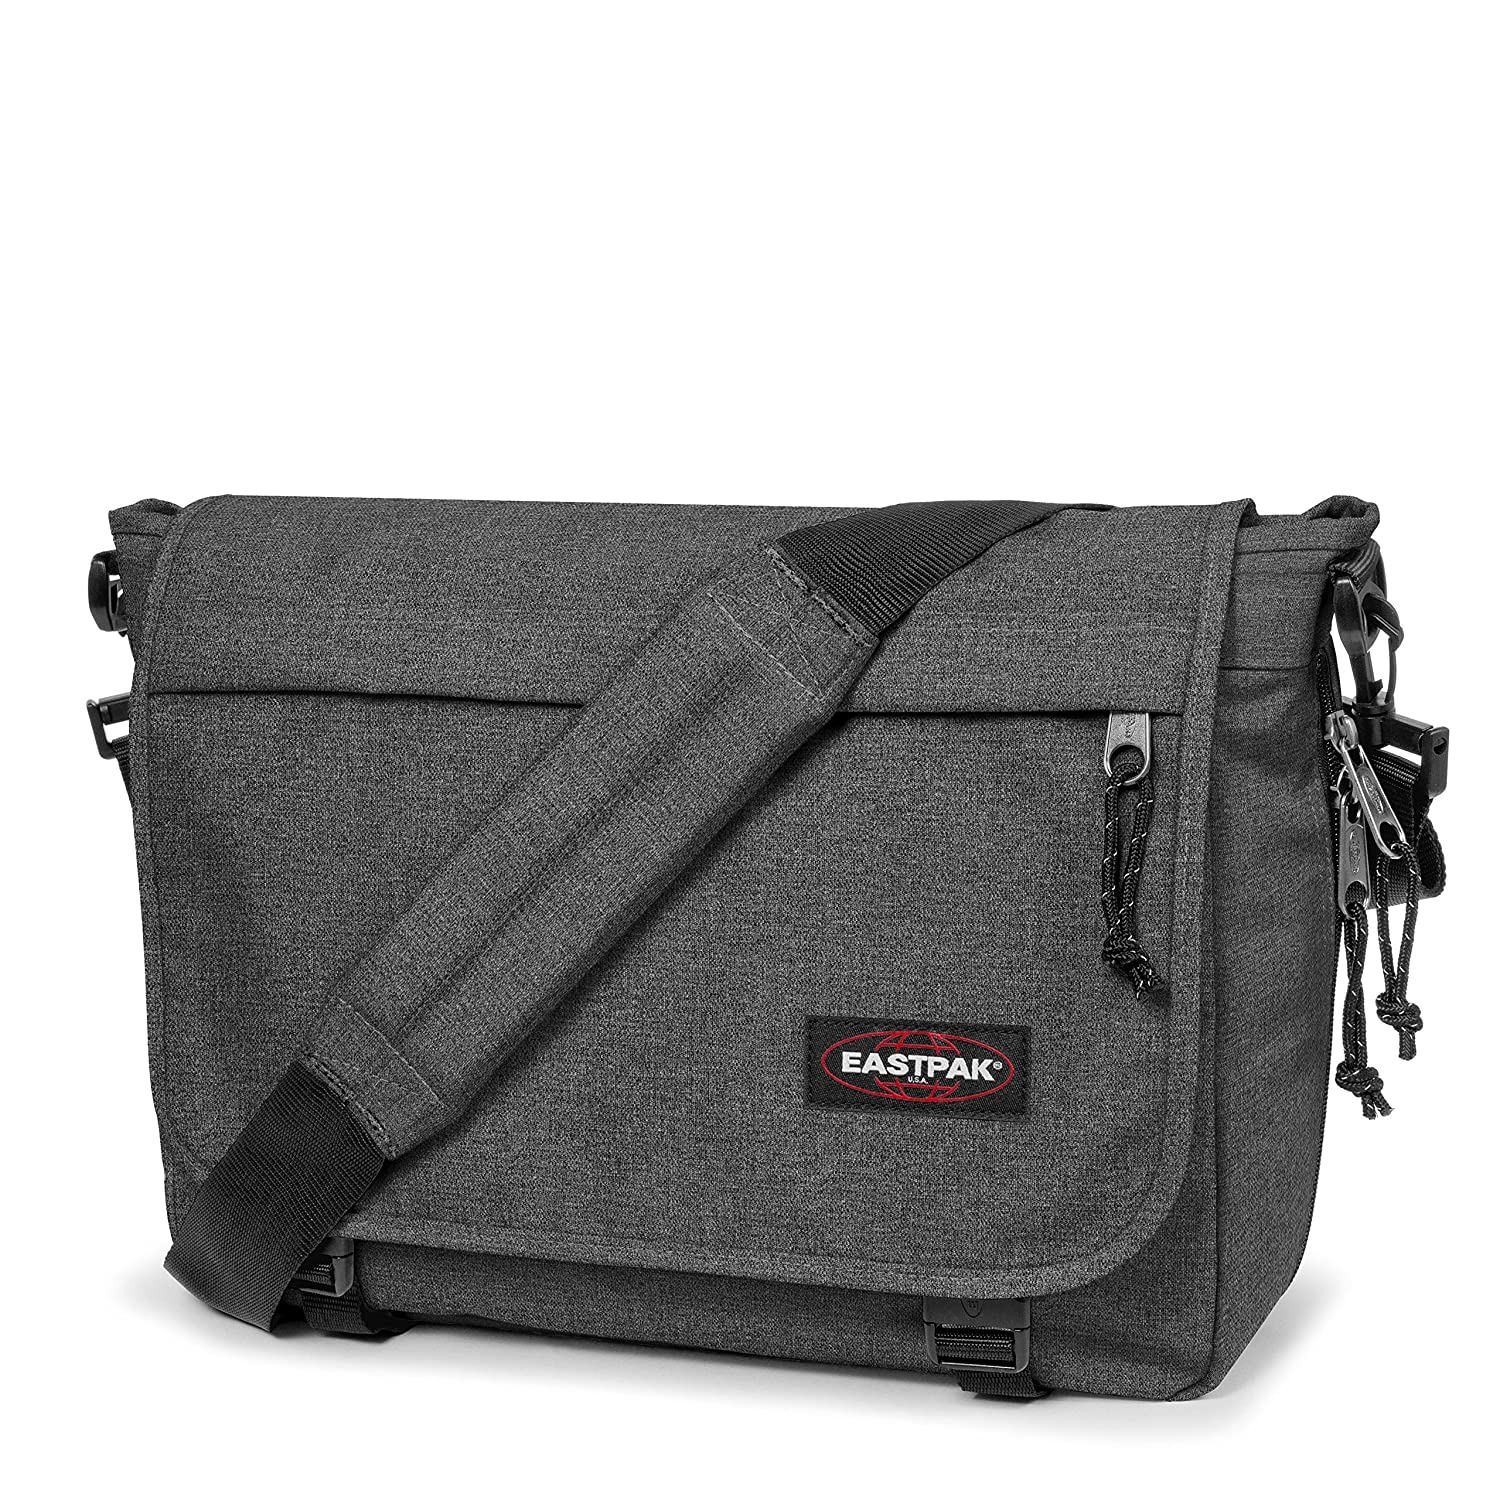 315a81dfee Amazon.com | Eastpak Delegate Messenger Bag, 39 cm, 20 L, Black (Black  Denim) | Messenger Bags